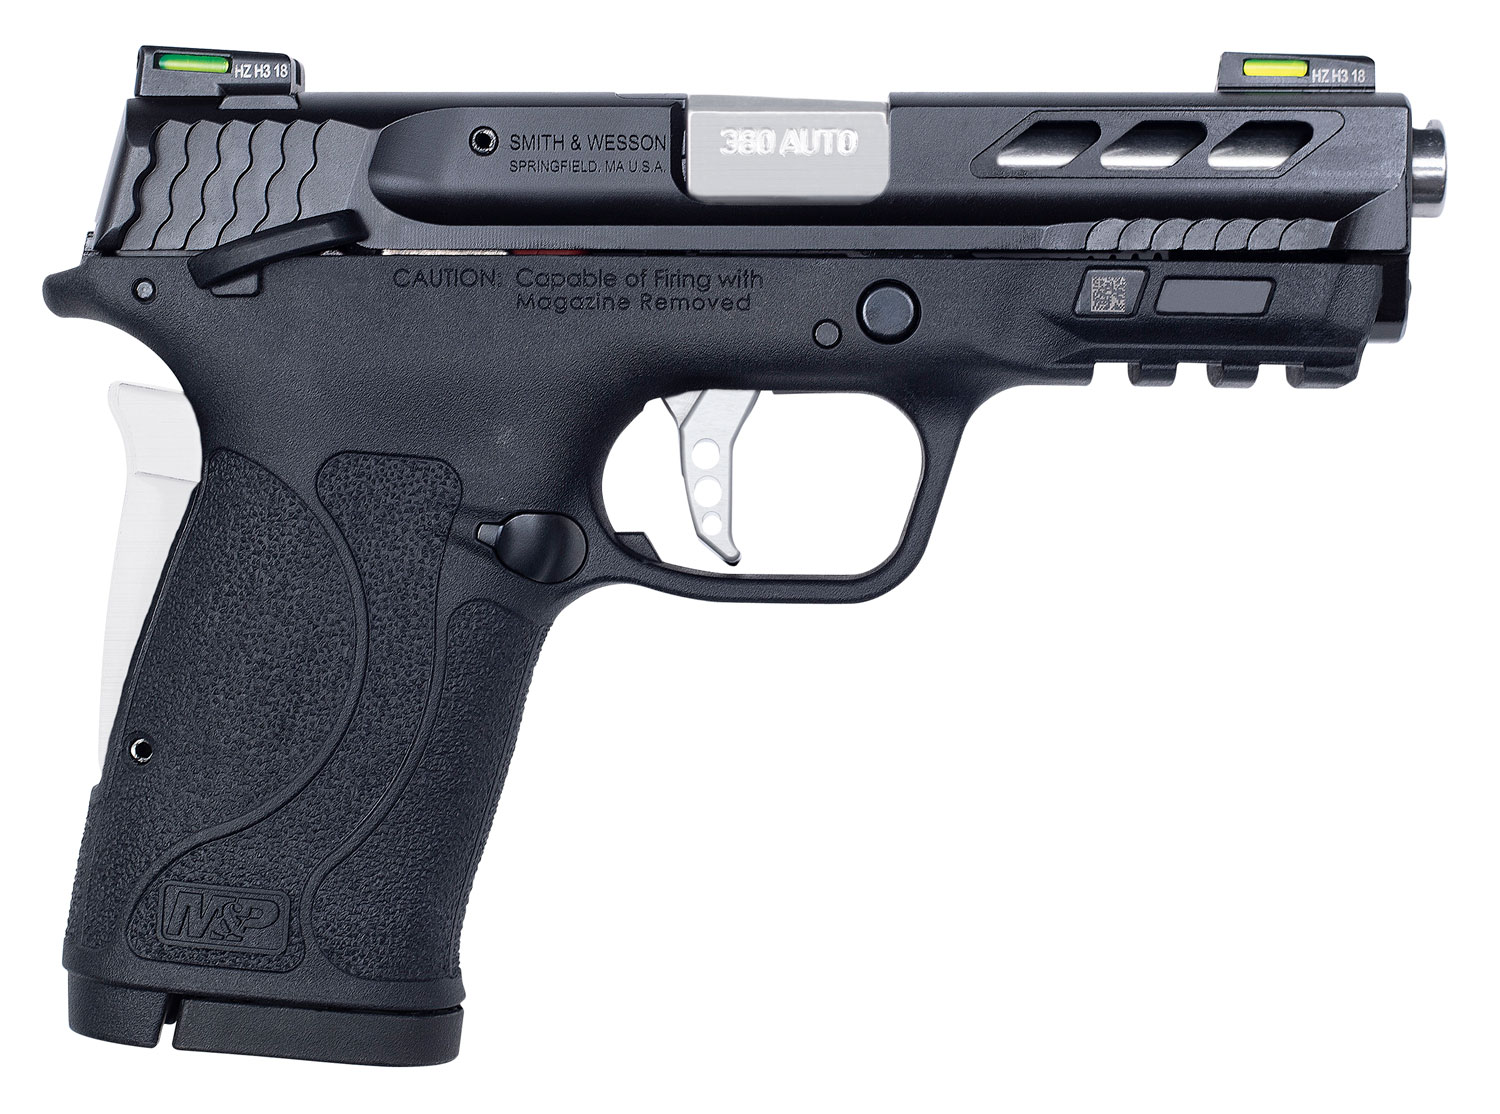 Smith & Wesson 12718 Performance Center 380 Shield EZ 380 Automatic Colt Pistol (ACP) Double 3.8